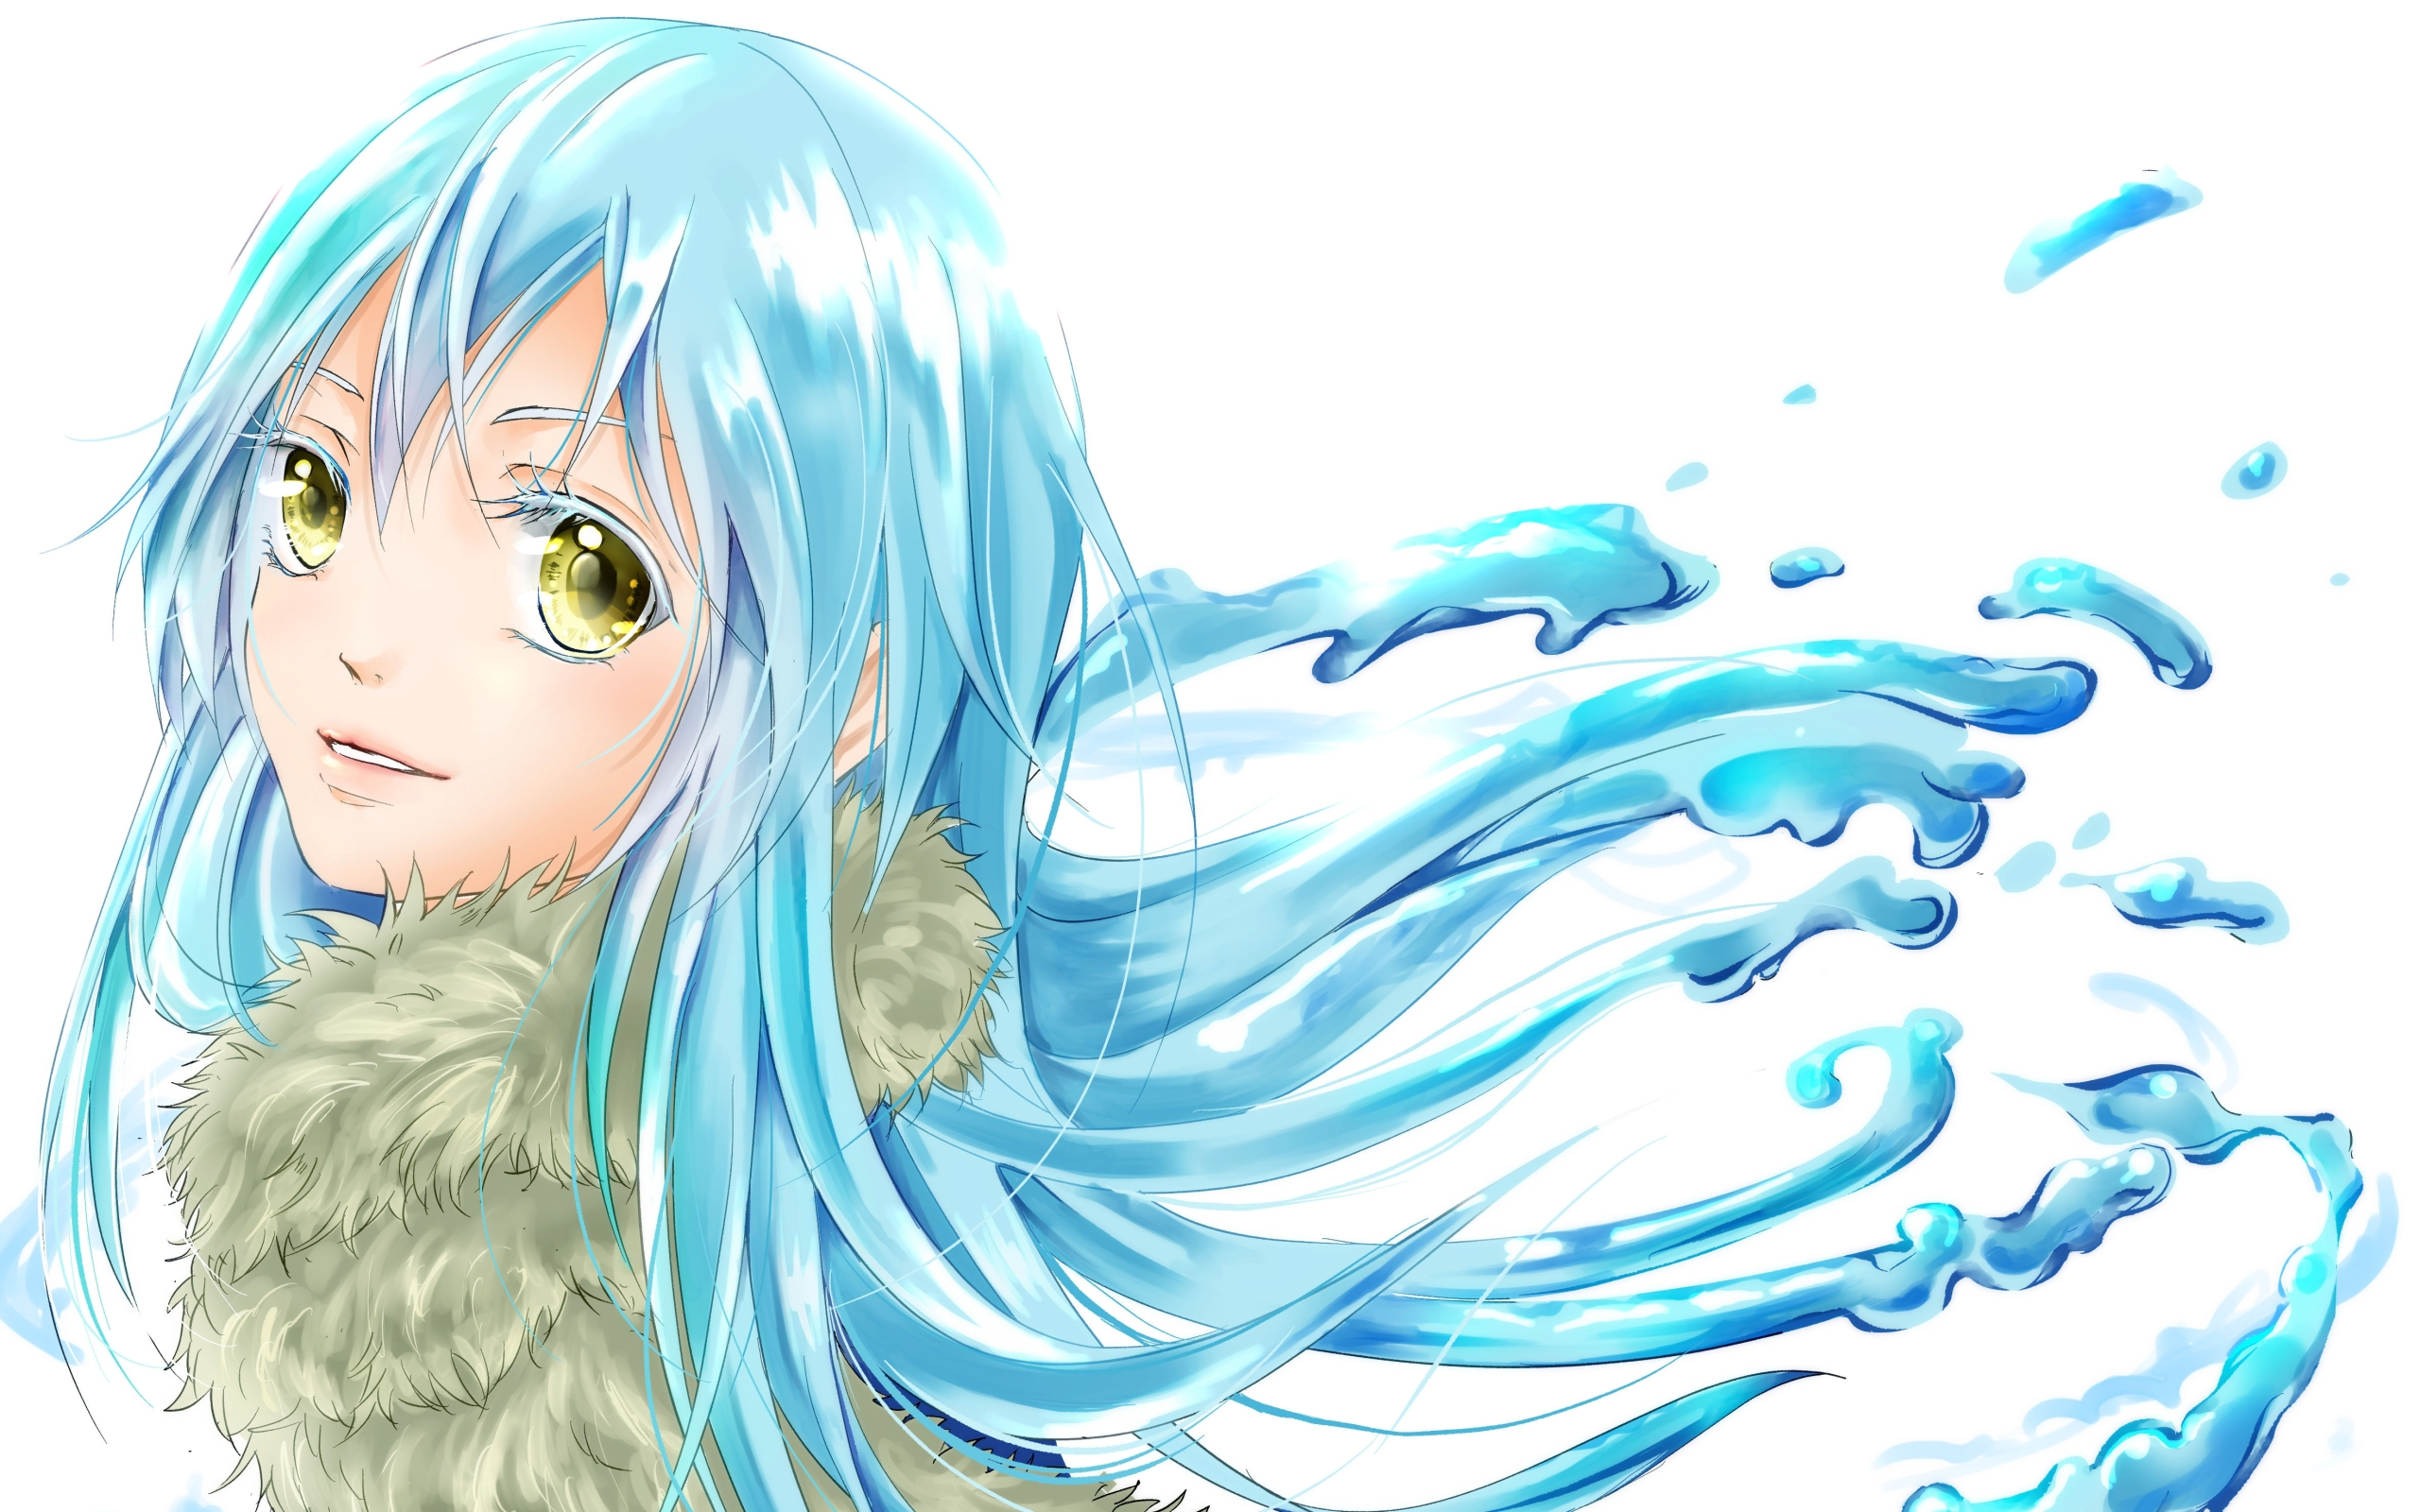 Wallpapers of That Time I Got Reincarnated as a Slime, Rimuru